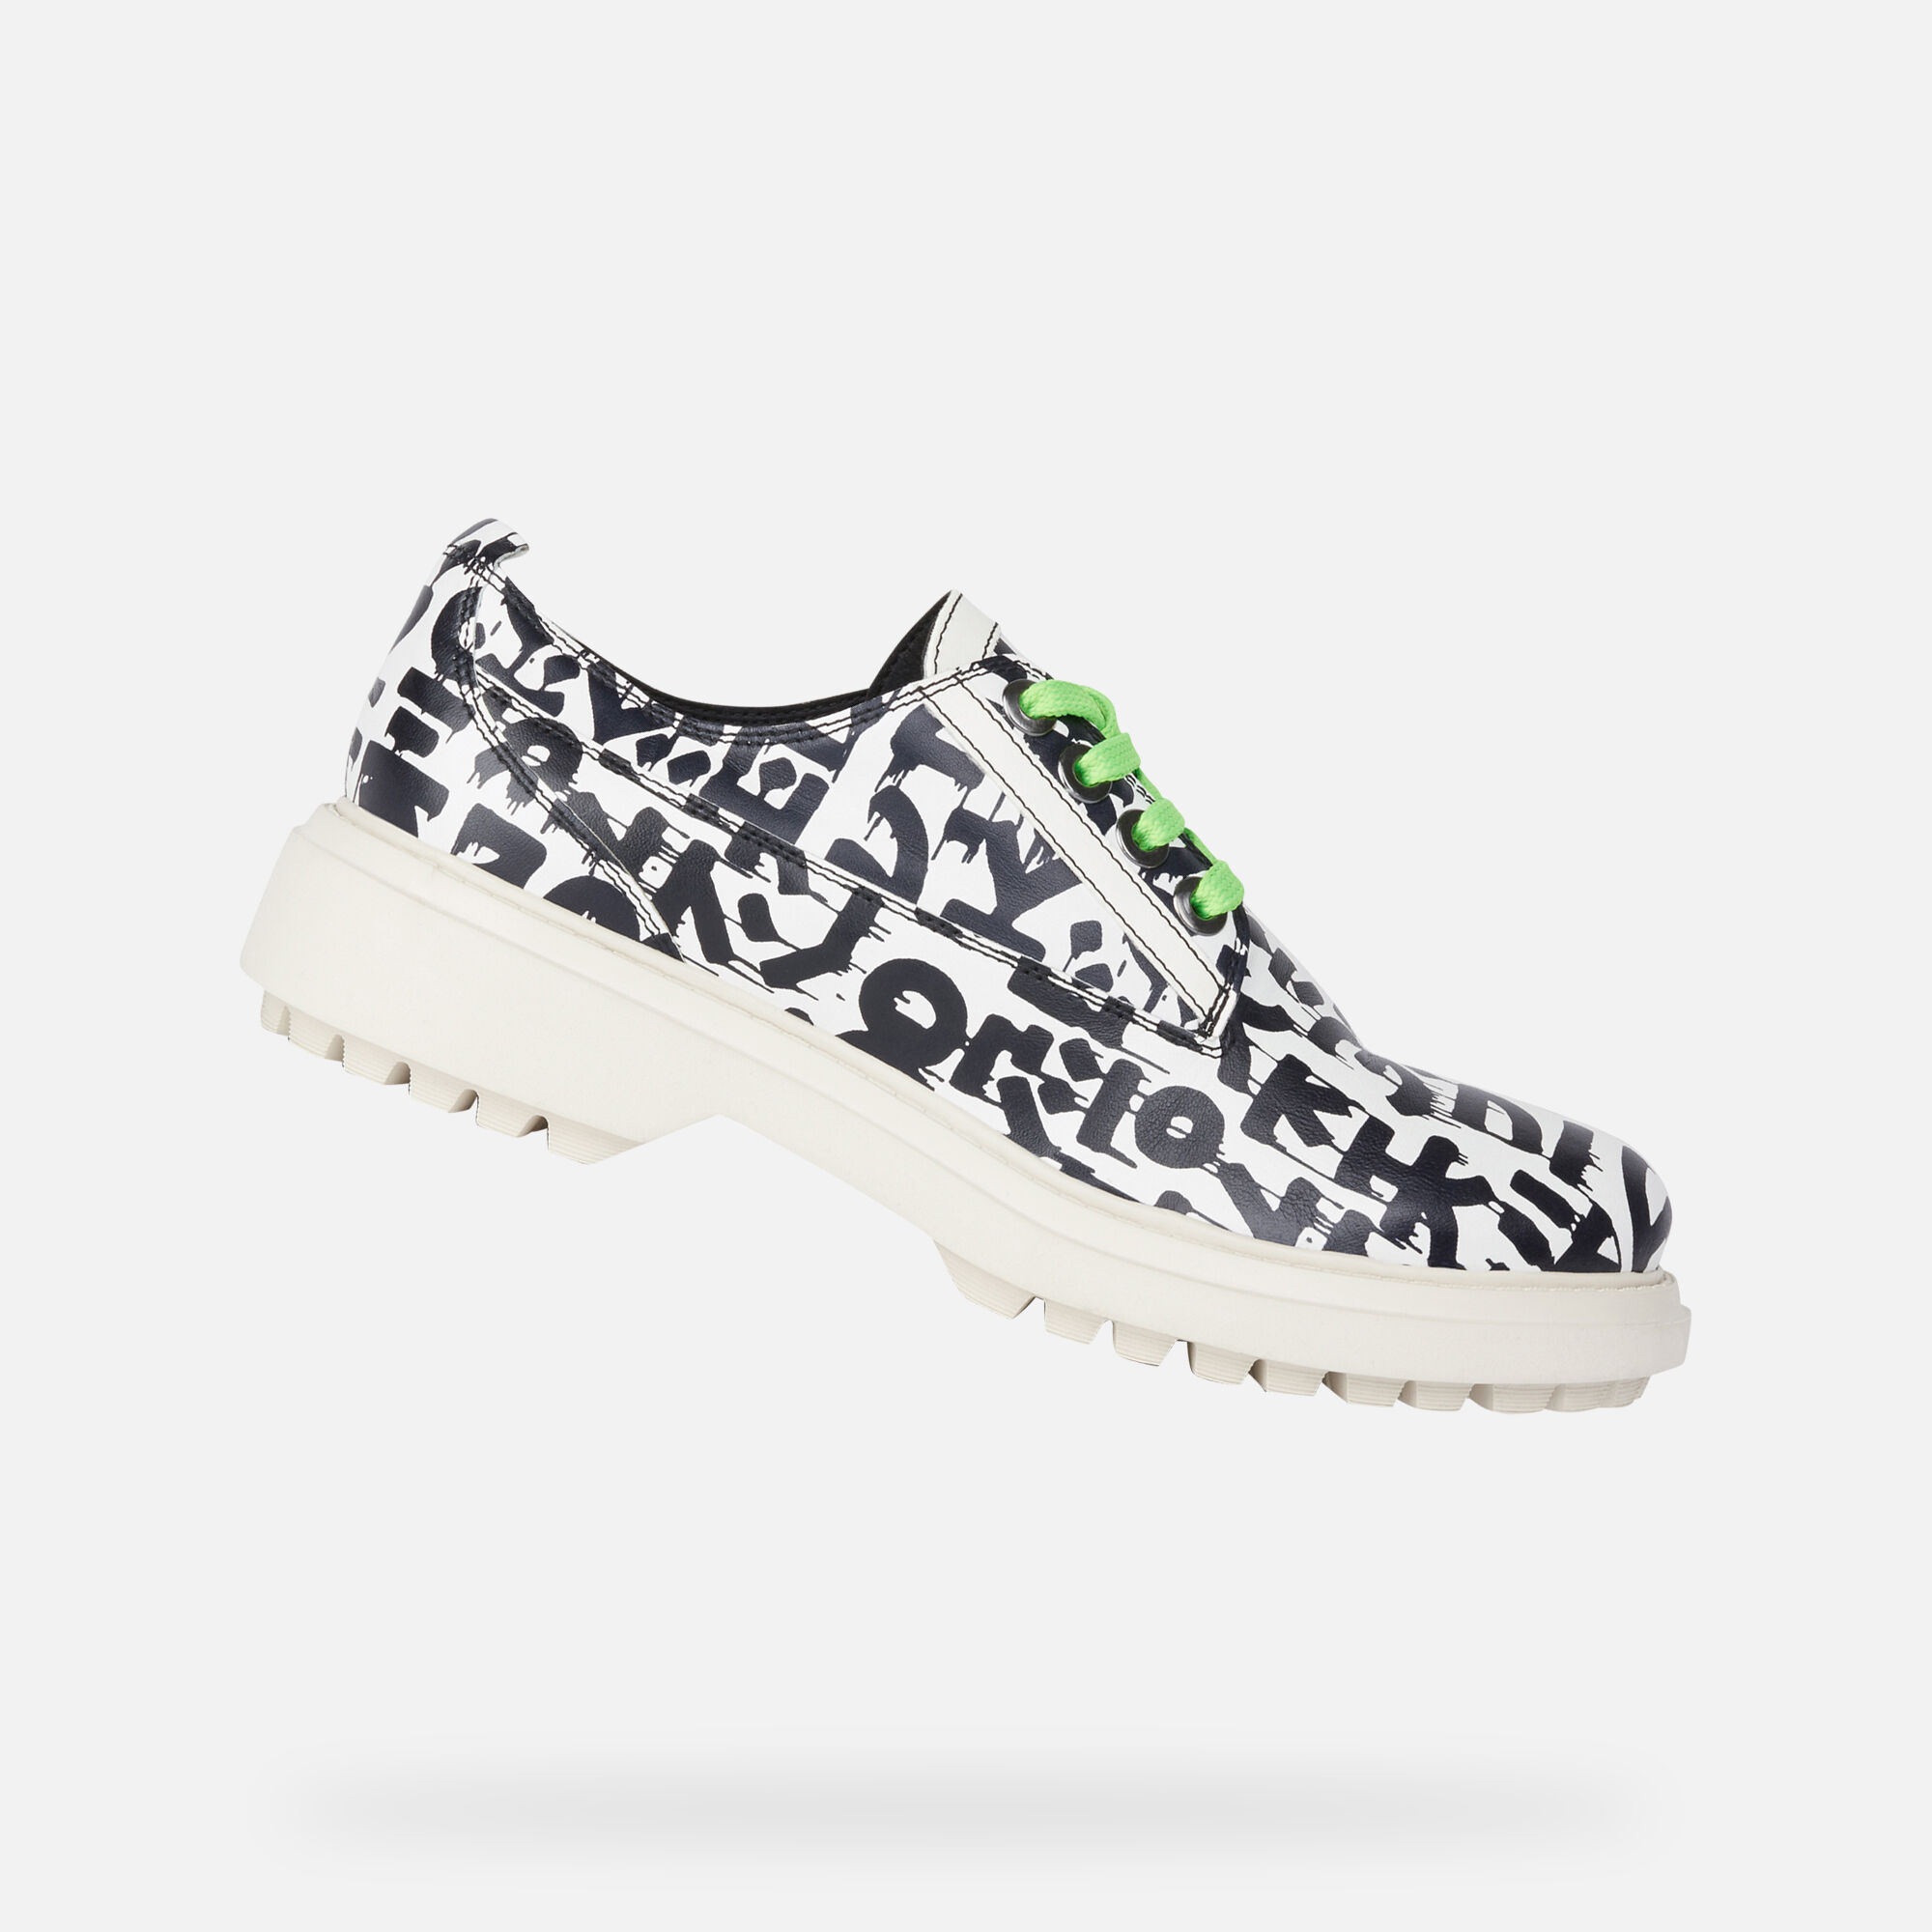 Geox women's shoes | White leather lace up shoes | Shop